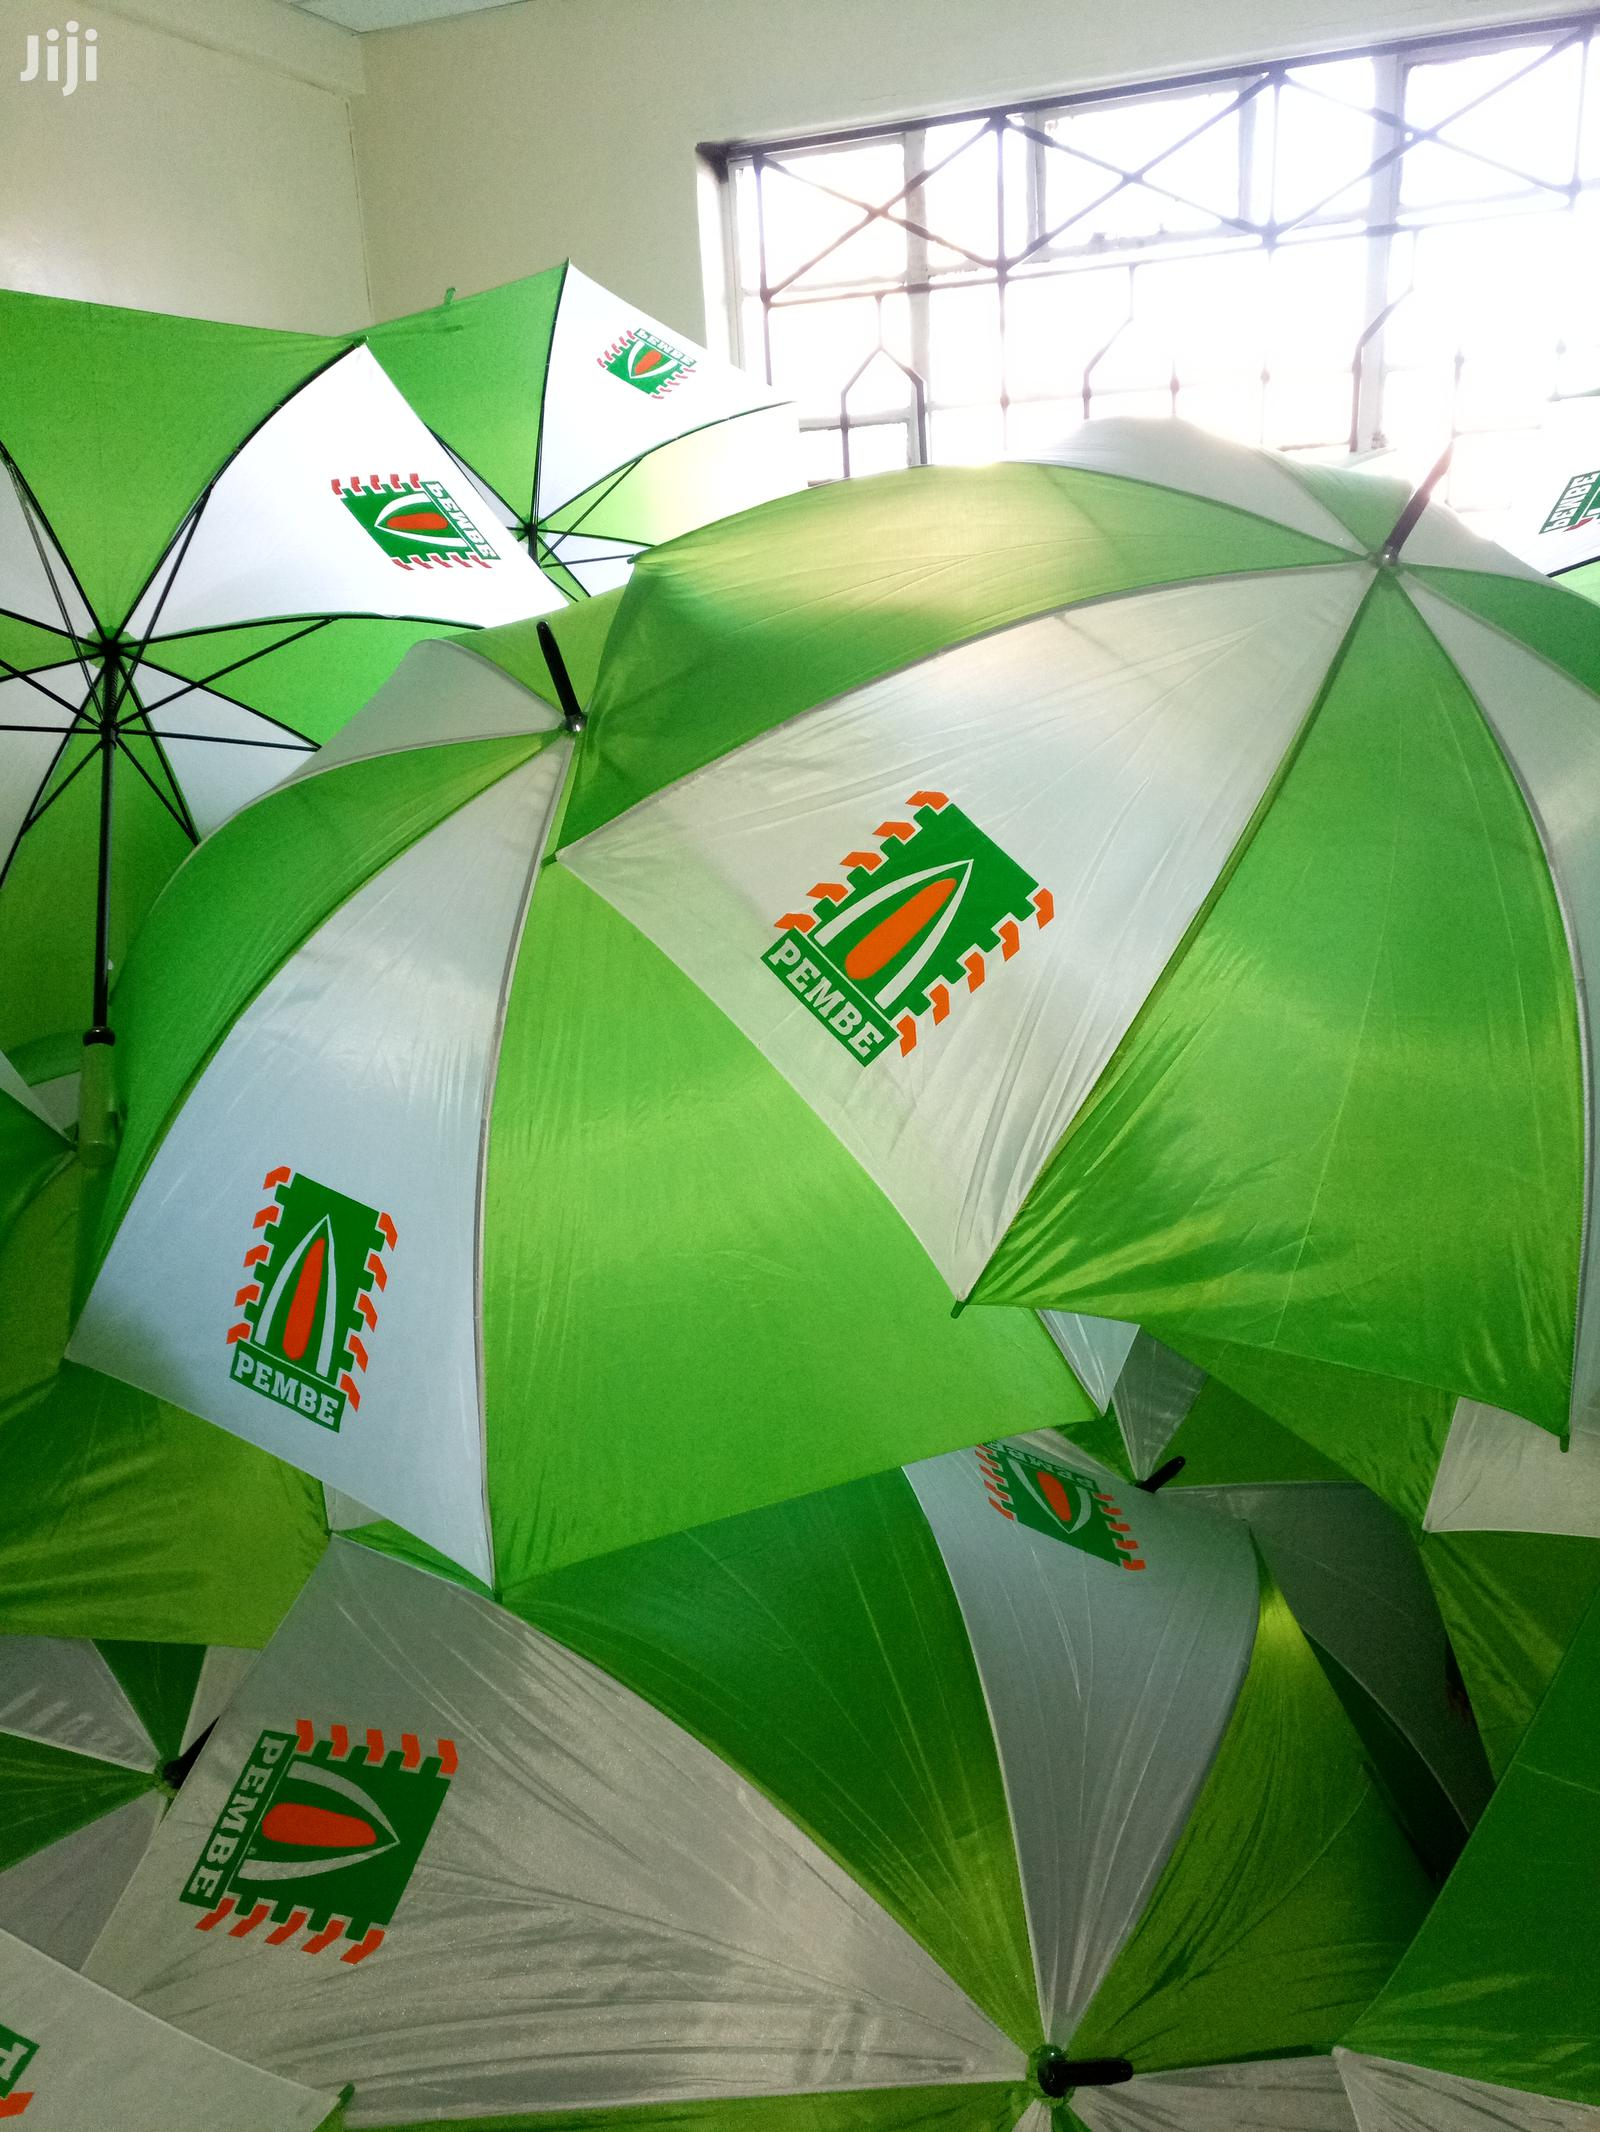 Get Customized, Branded, And Printed, Promotional Umbrellas. | Printing Services for sale in Nairobi Central, Nairobi, Kenya